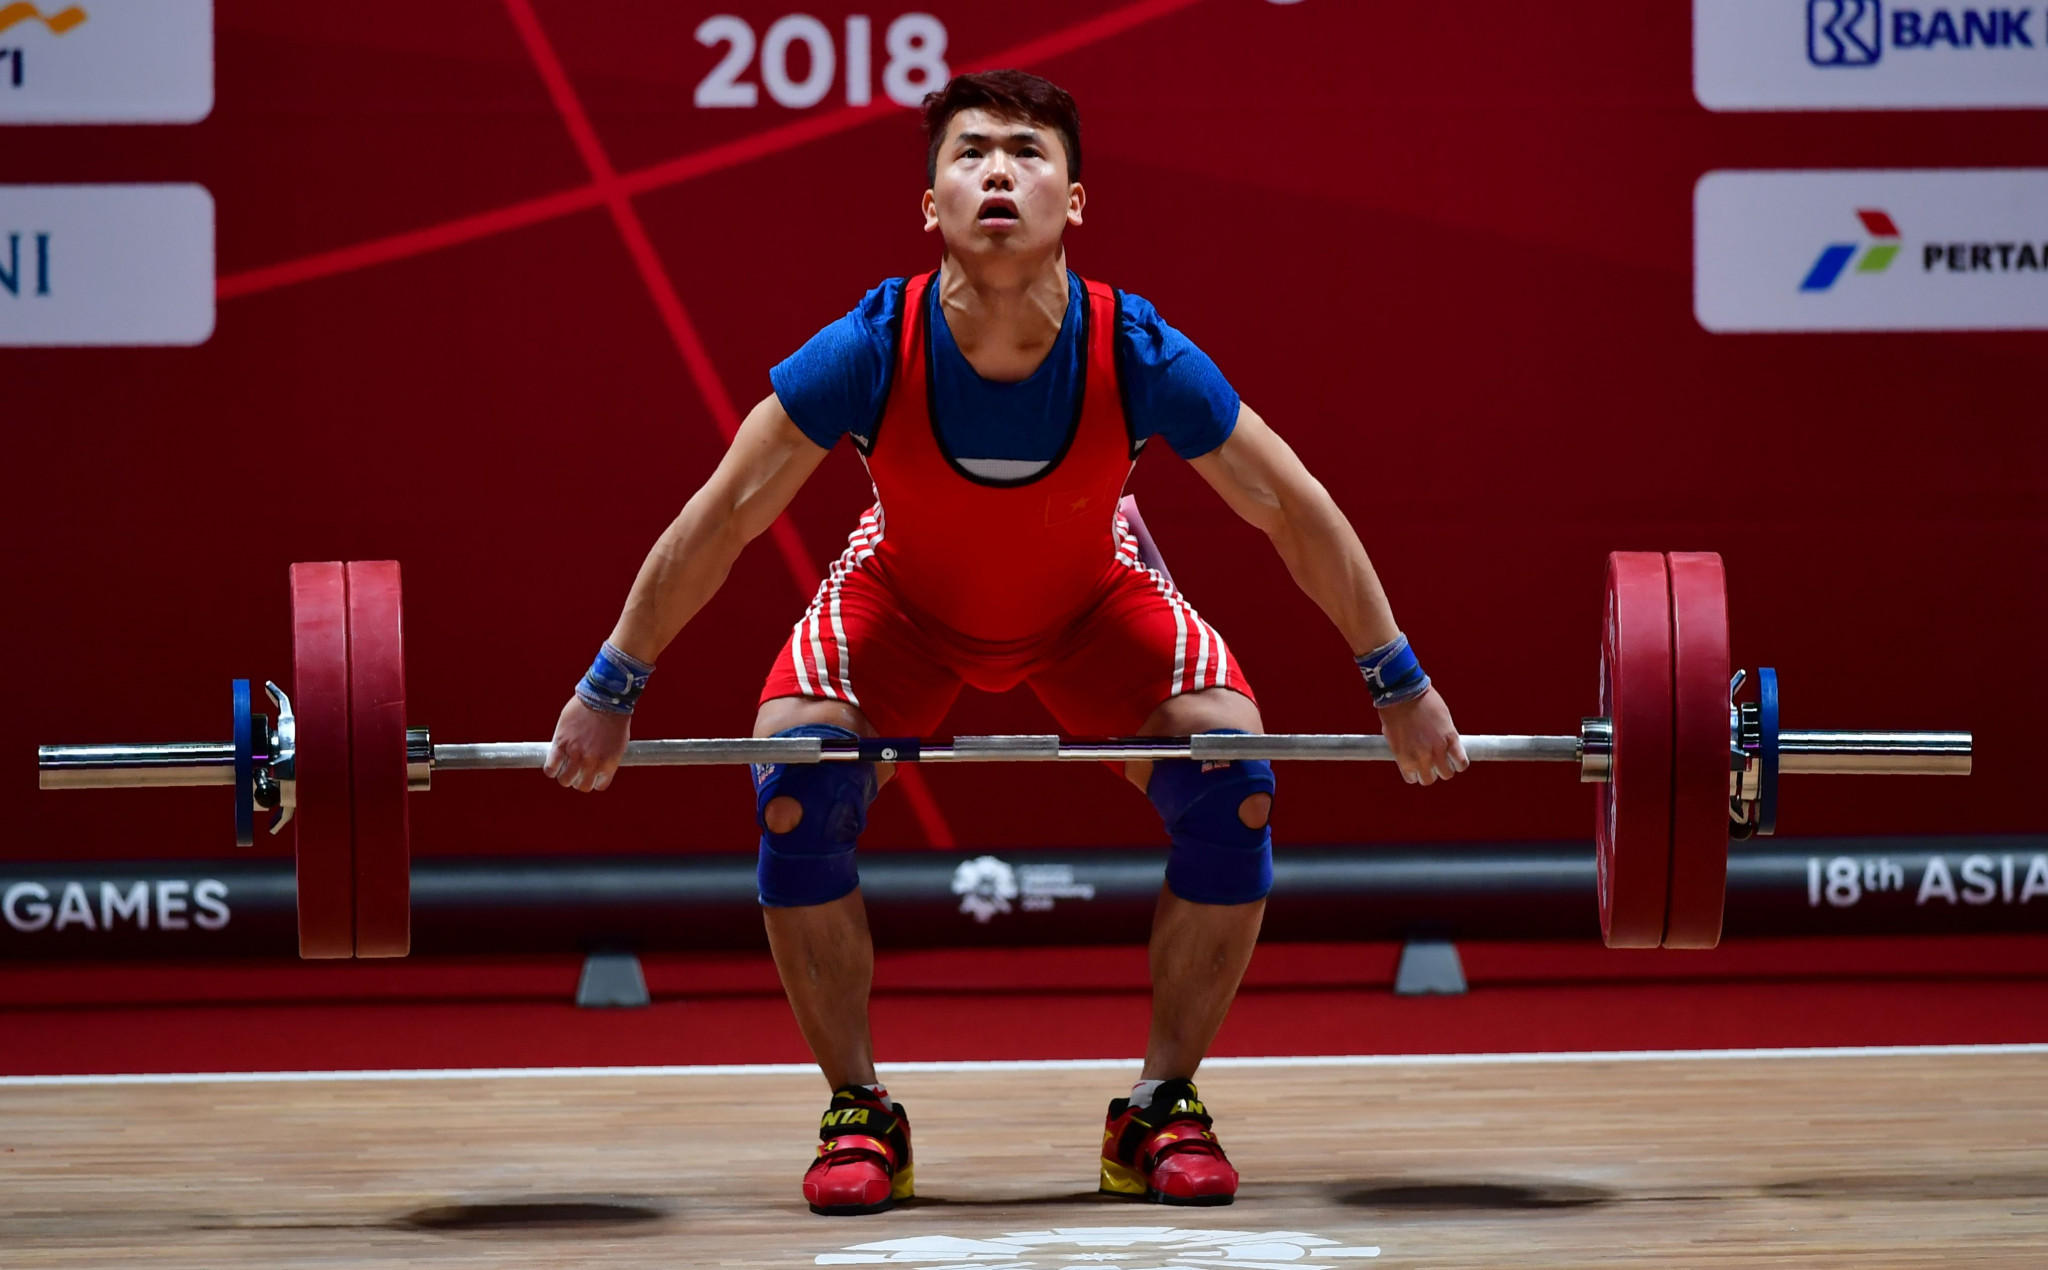 Trinh Van Vinh, a Vietnamese weightlifter who won multiple medals was one of two positive tests in 2019 ©Getty Images